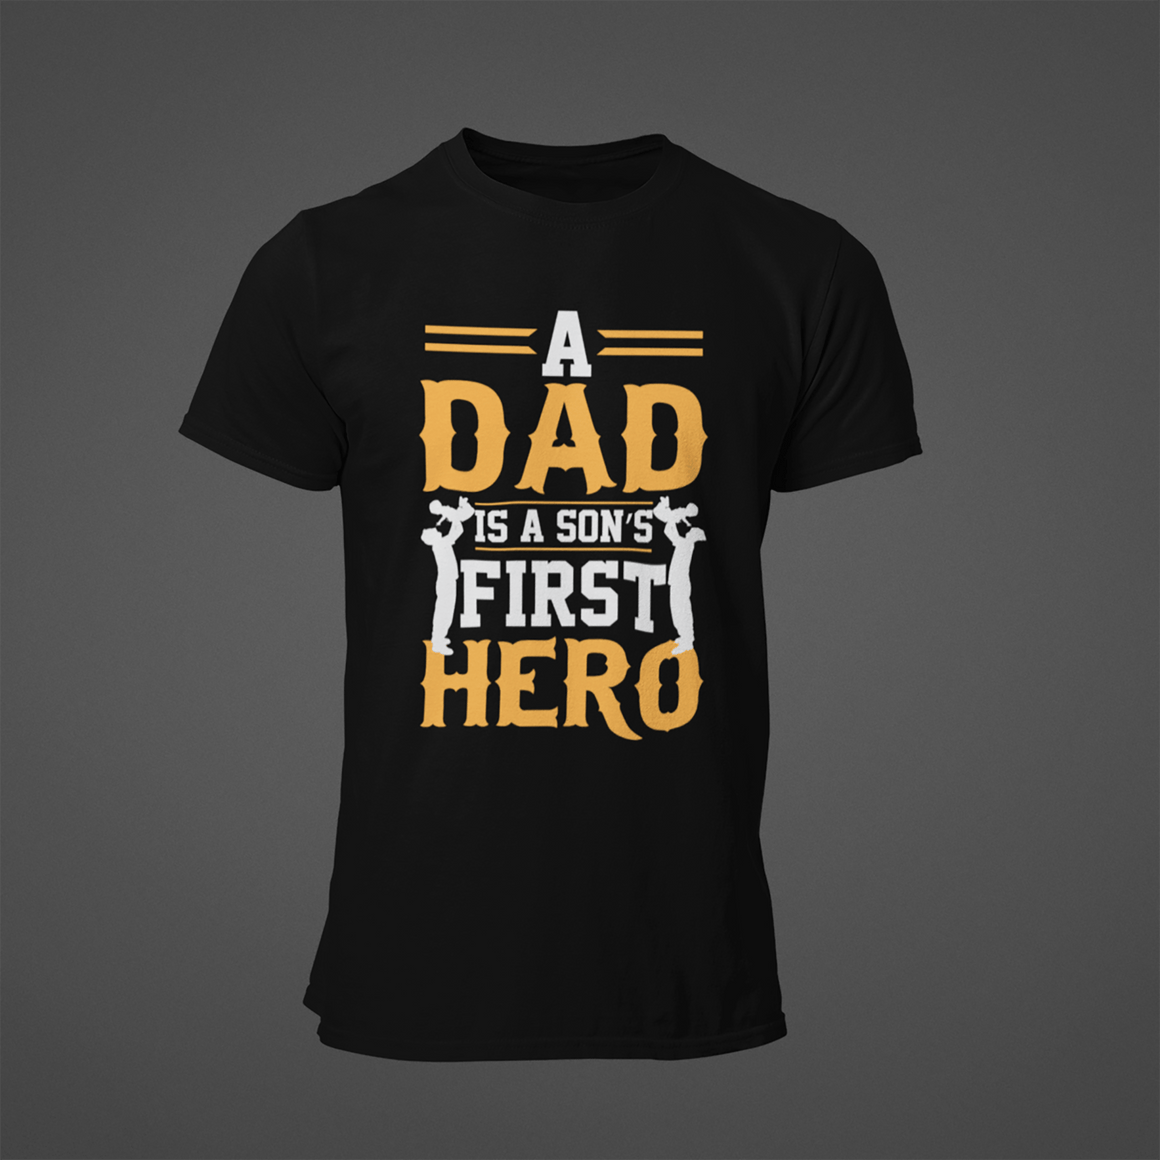 A DAD IS A SON'S FIRST HERO T-SHIRT - Gray's Active Wear Printing